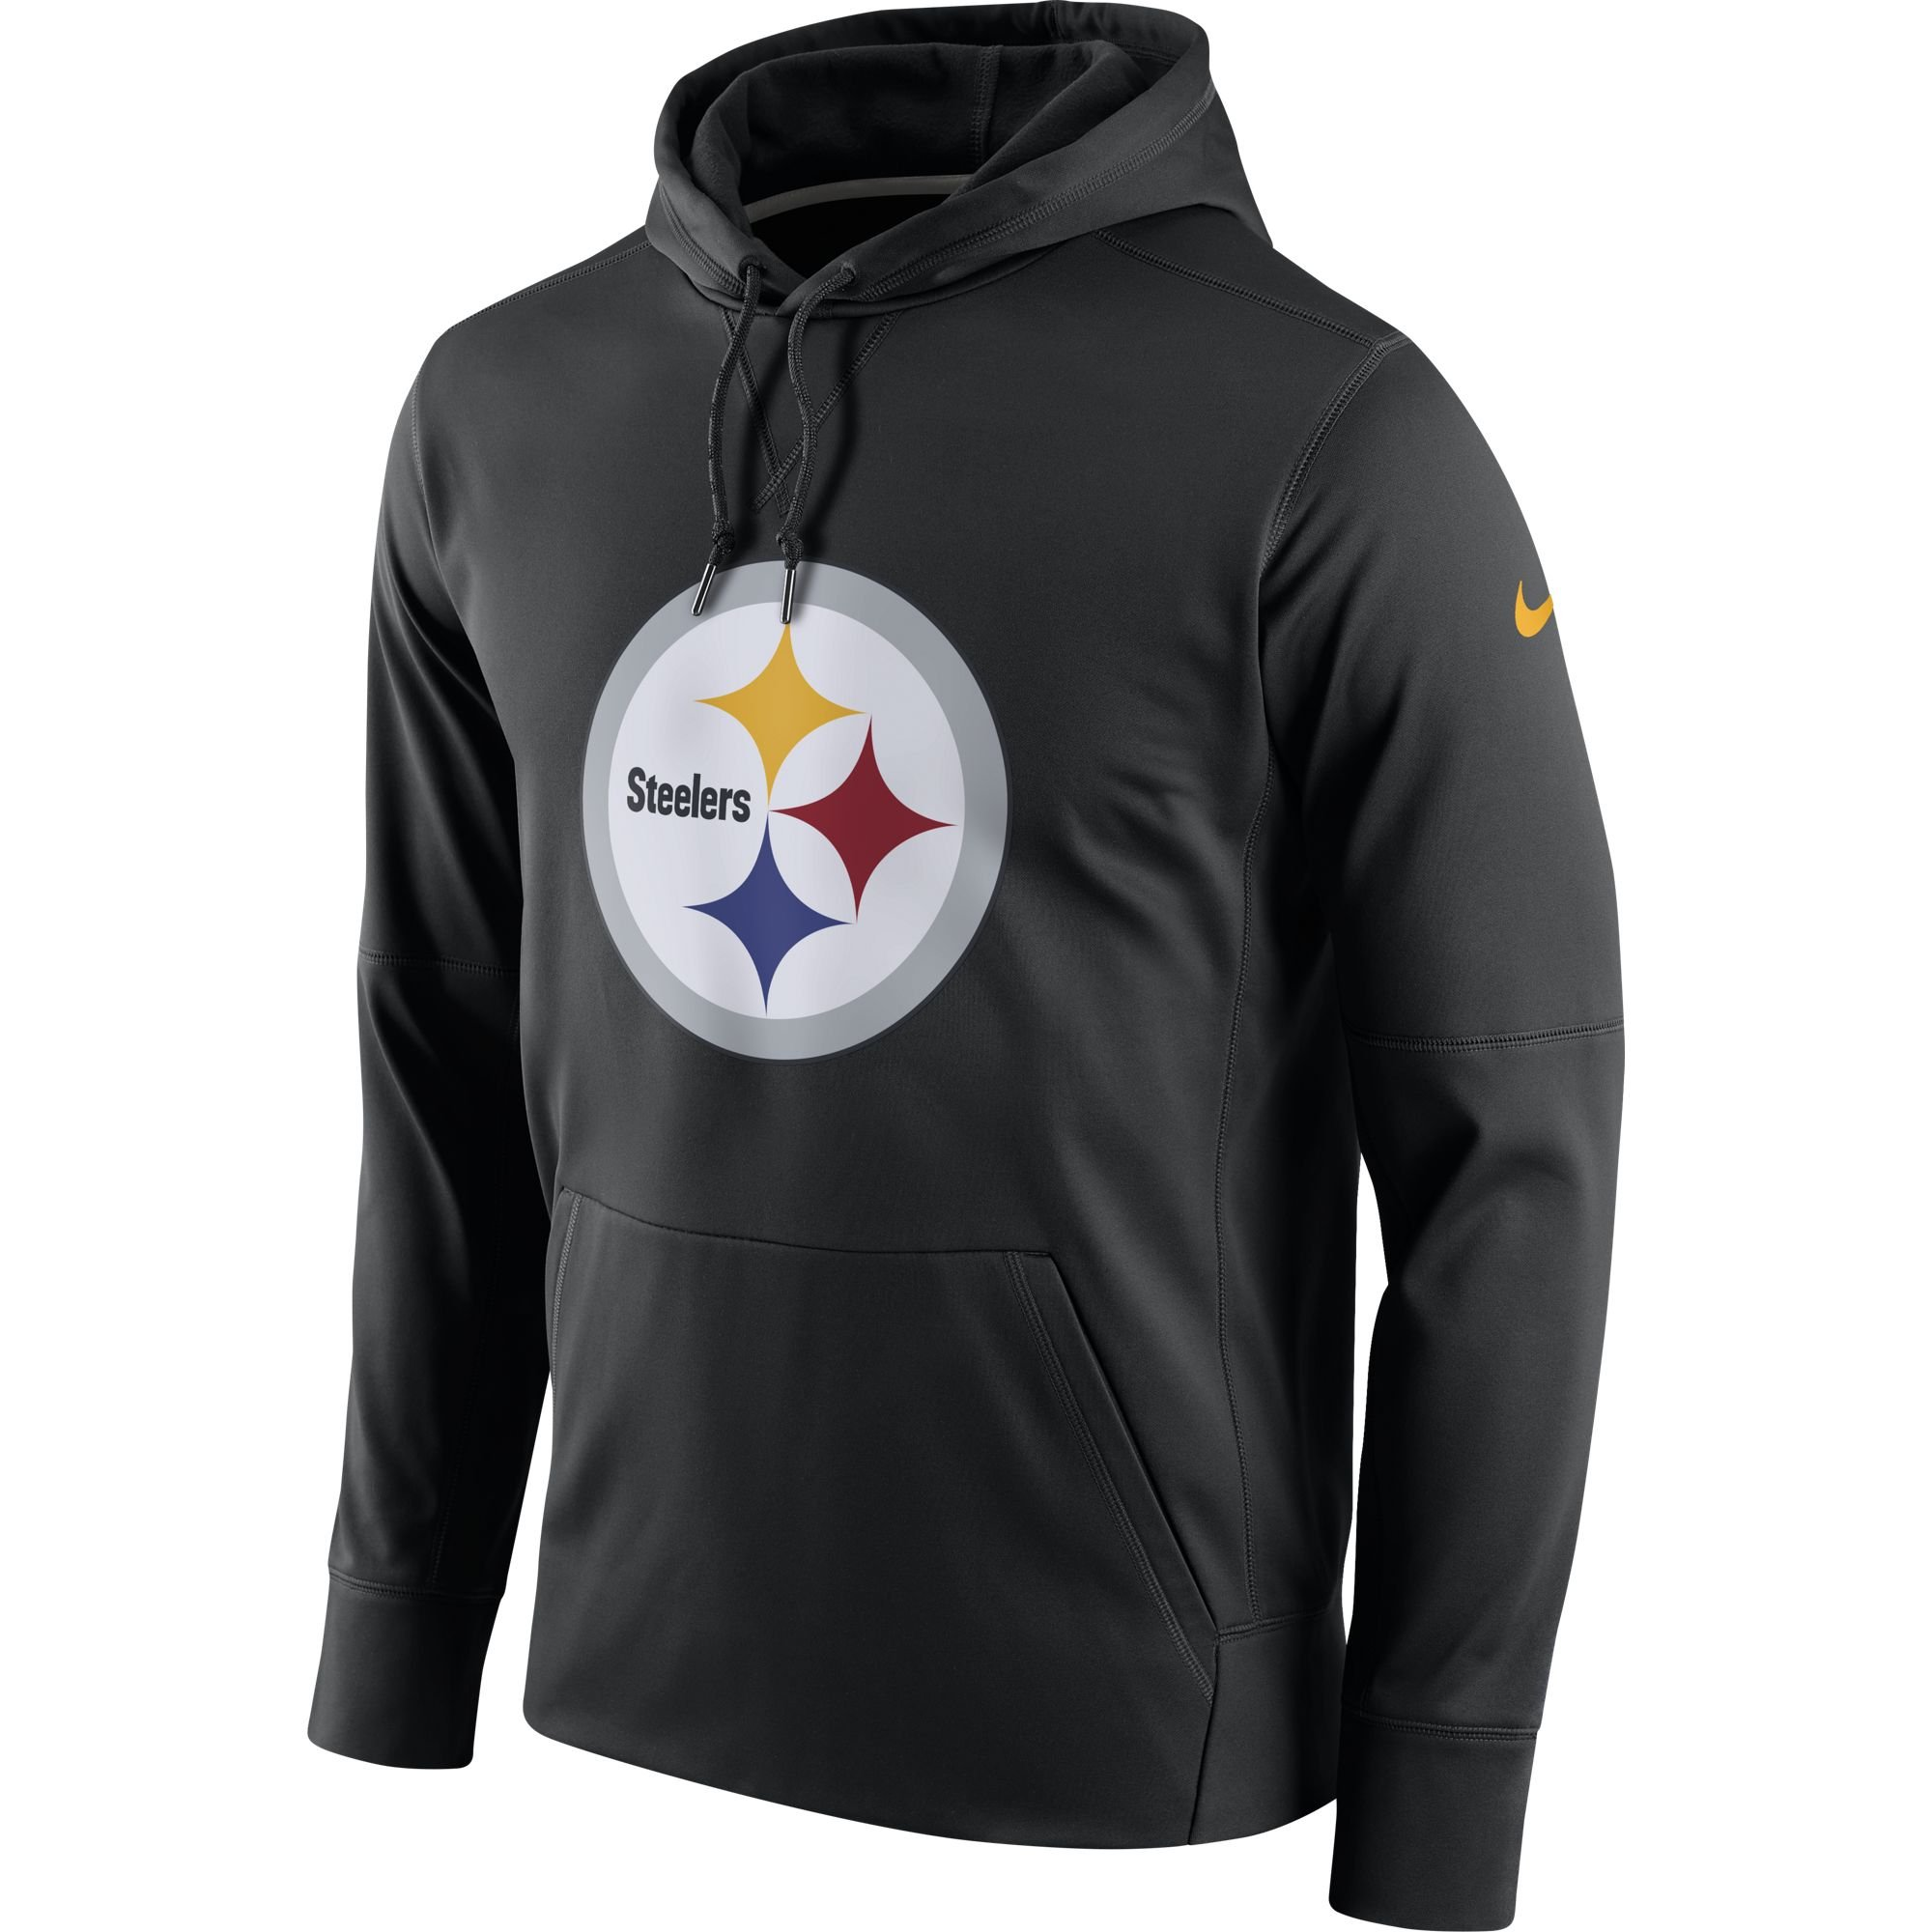 Nike Men's Pittsburgh Steelers Logo Essential Hoodie Black/University Gold Size Large